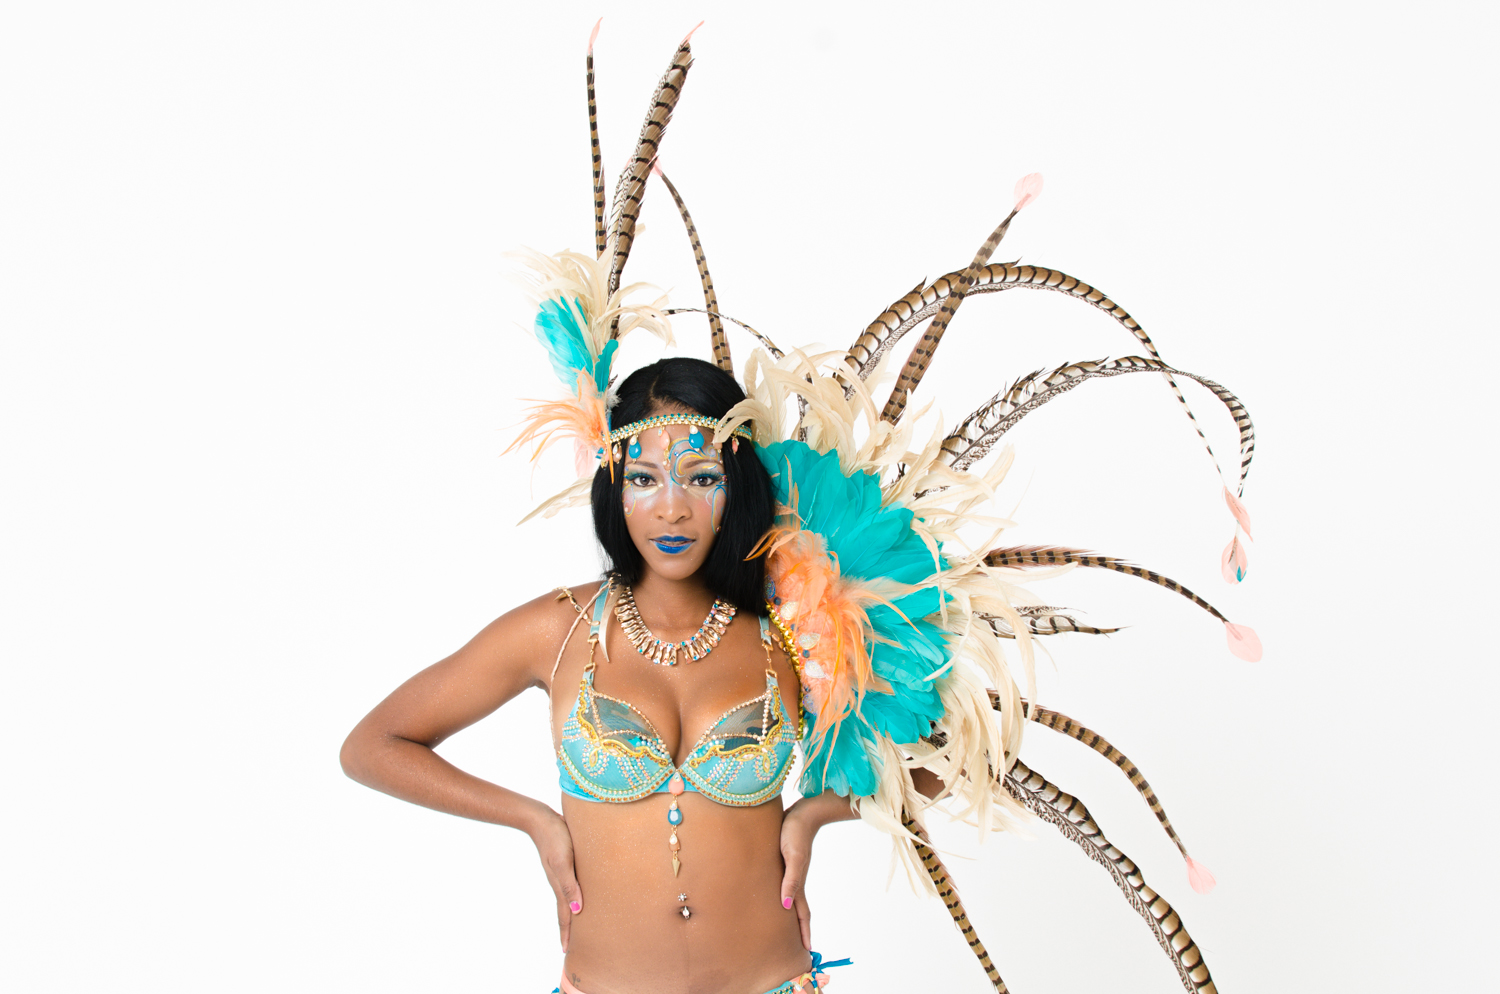 Fatal Angel presents Blue, Camo and Mud for Miami Carnival 2013